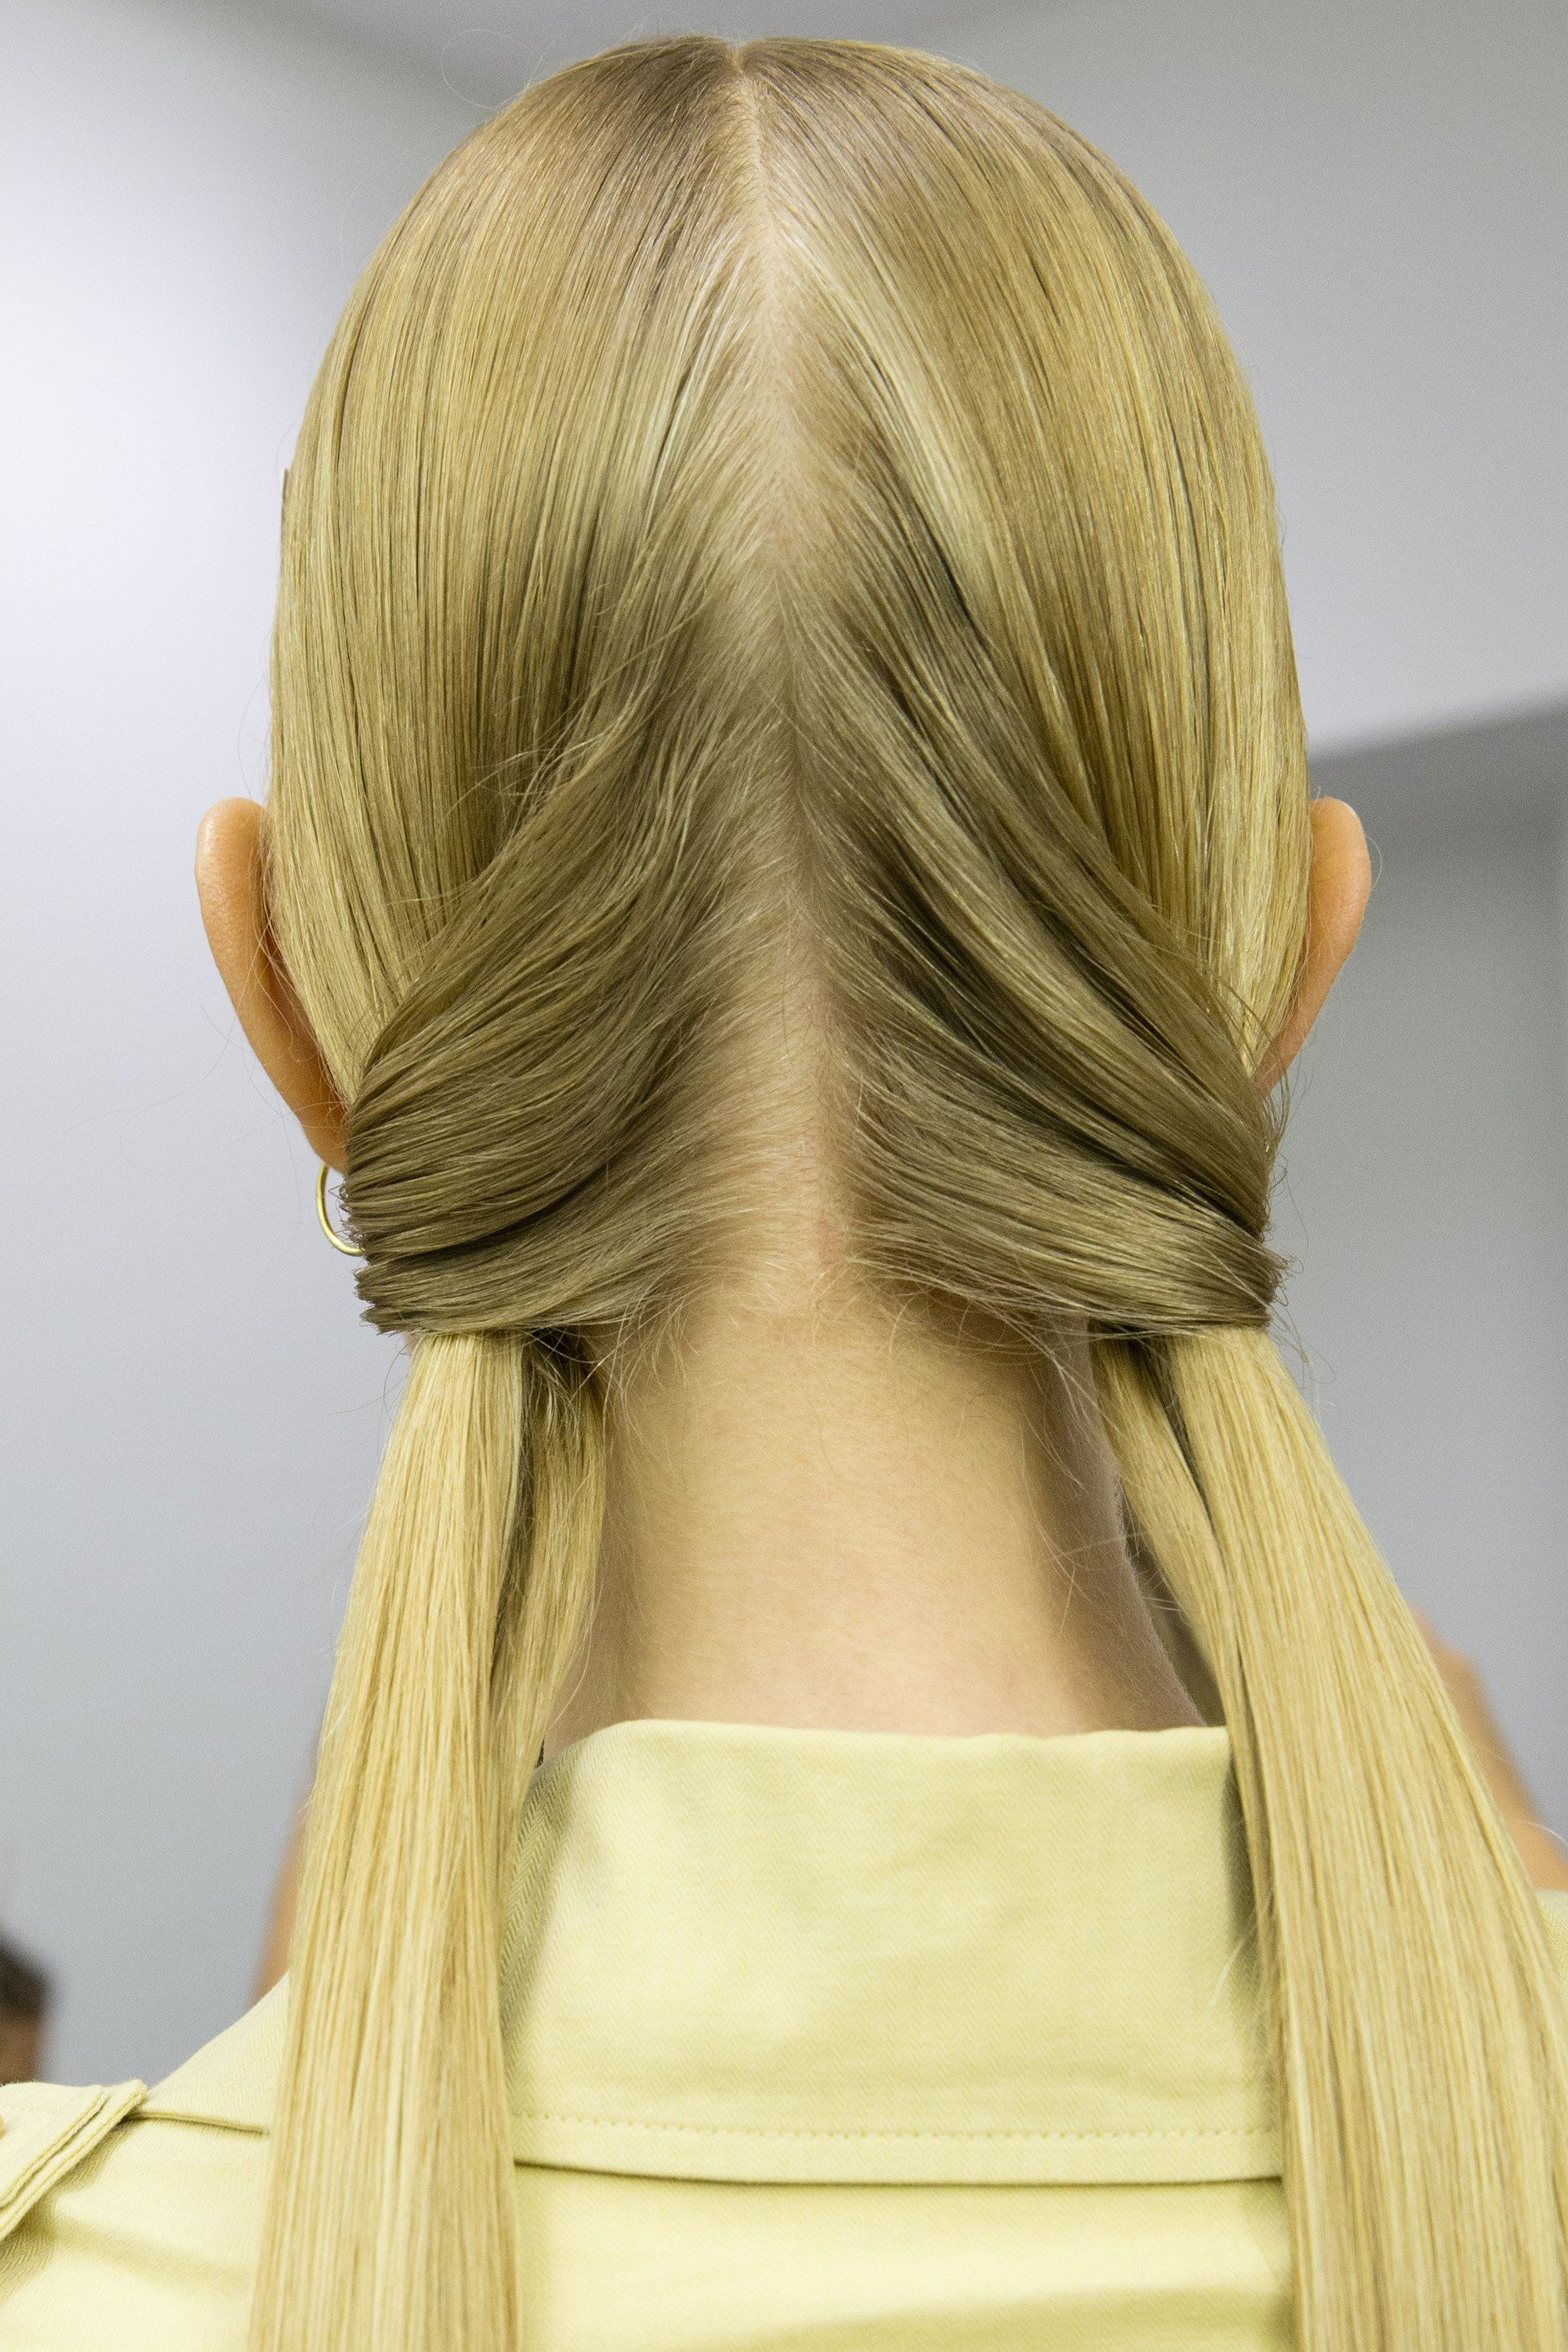 Look - Braided spring hairstyles inspired from the runway video